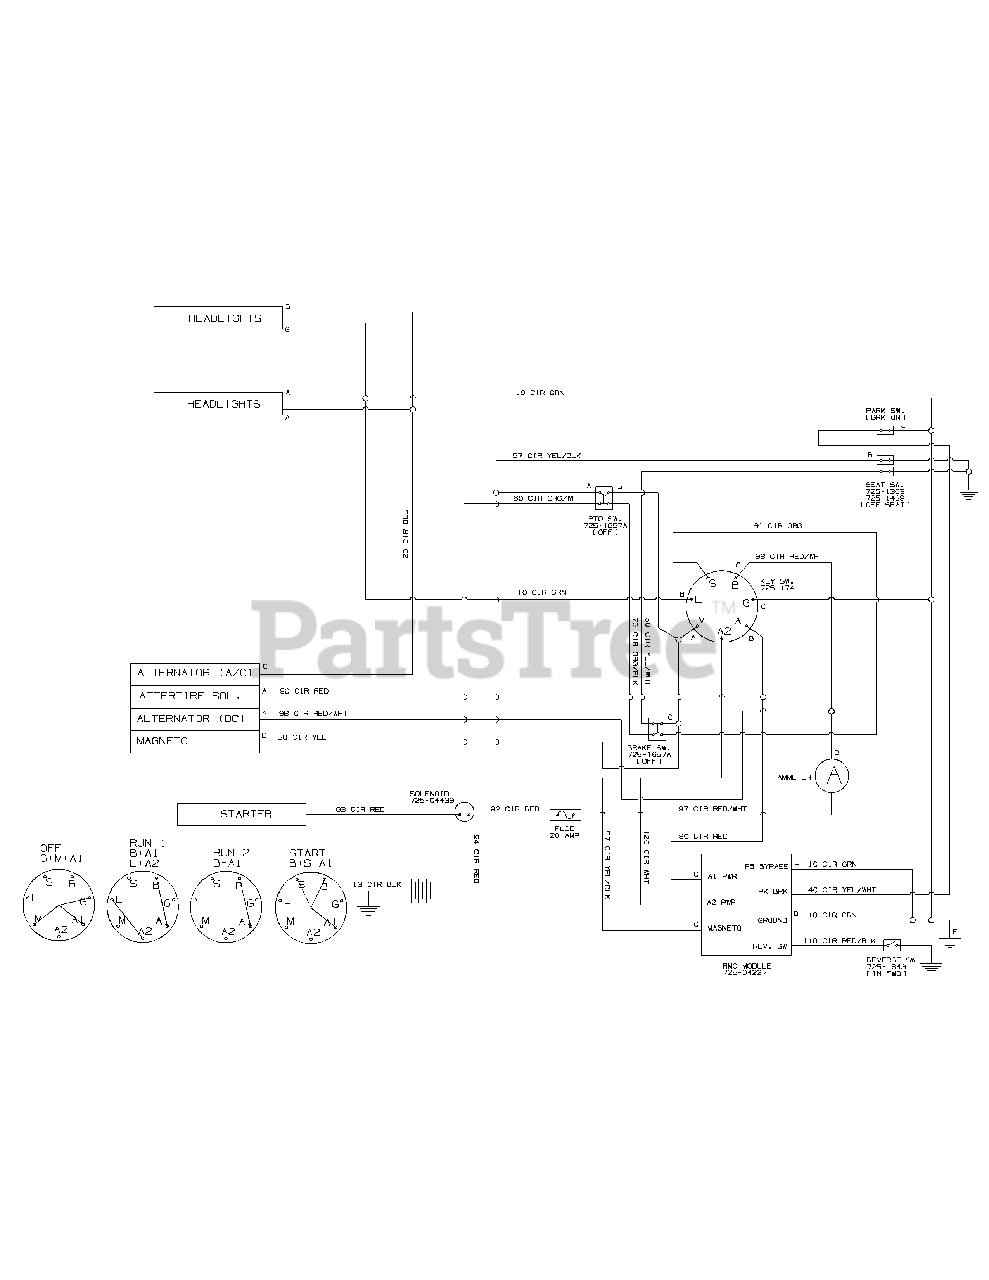 troy-bilt 13wx79kt011 - troy-bilt horse xp lawn tractor (2011) wiring  diagram parts lookup with diagrams | partstree  partstree